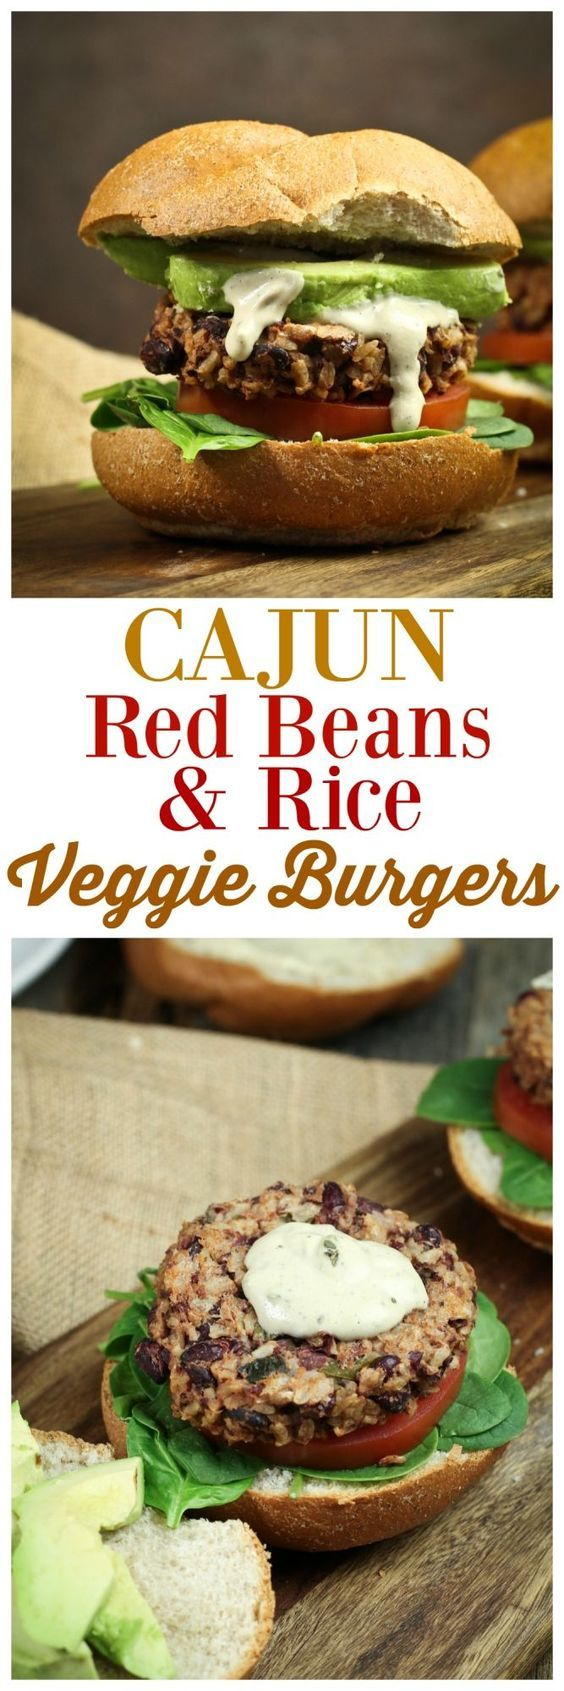 """""""Red Beans and Rice"""" turned into a delicious, healthy, hearty veggie burger! Baked, oil-free and dang good! Topped with a Cajun Cream Sauce!"""